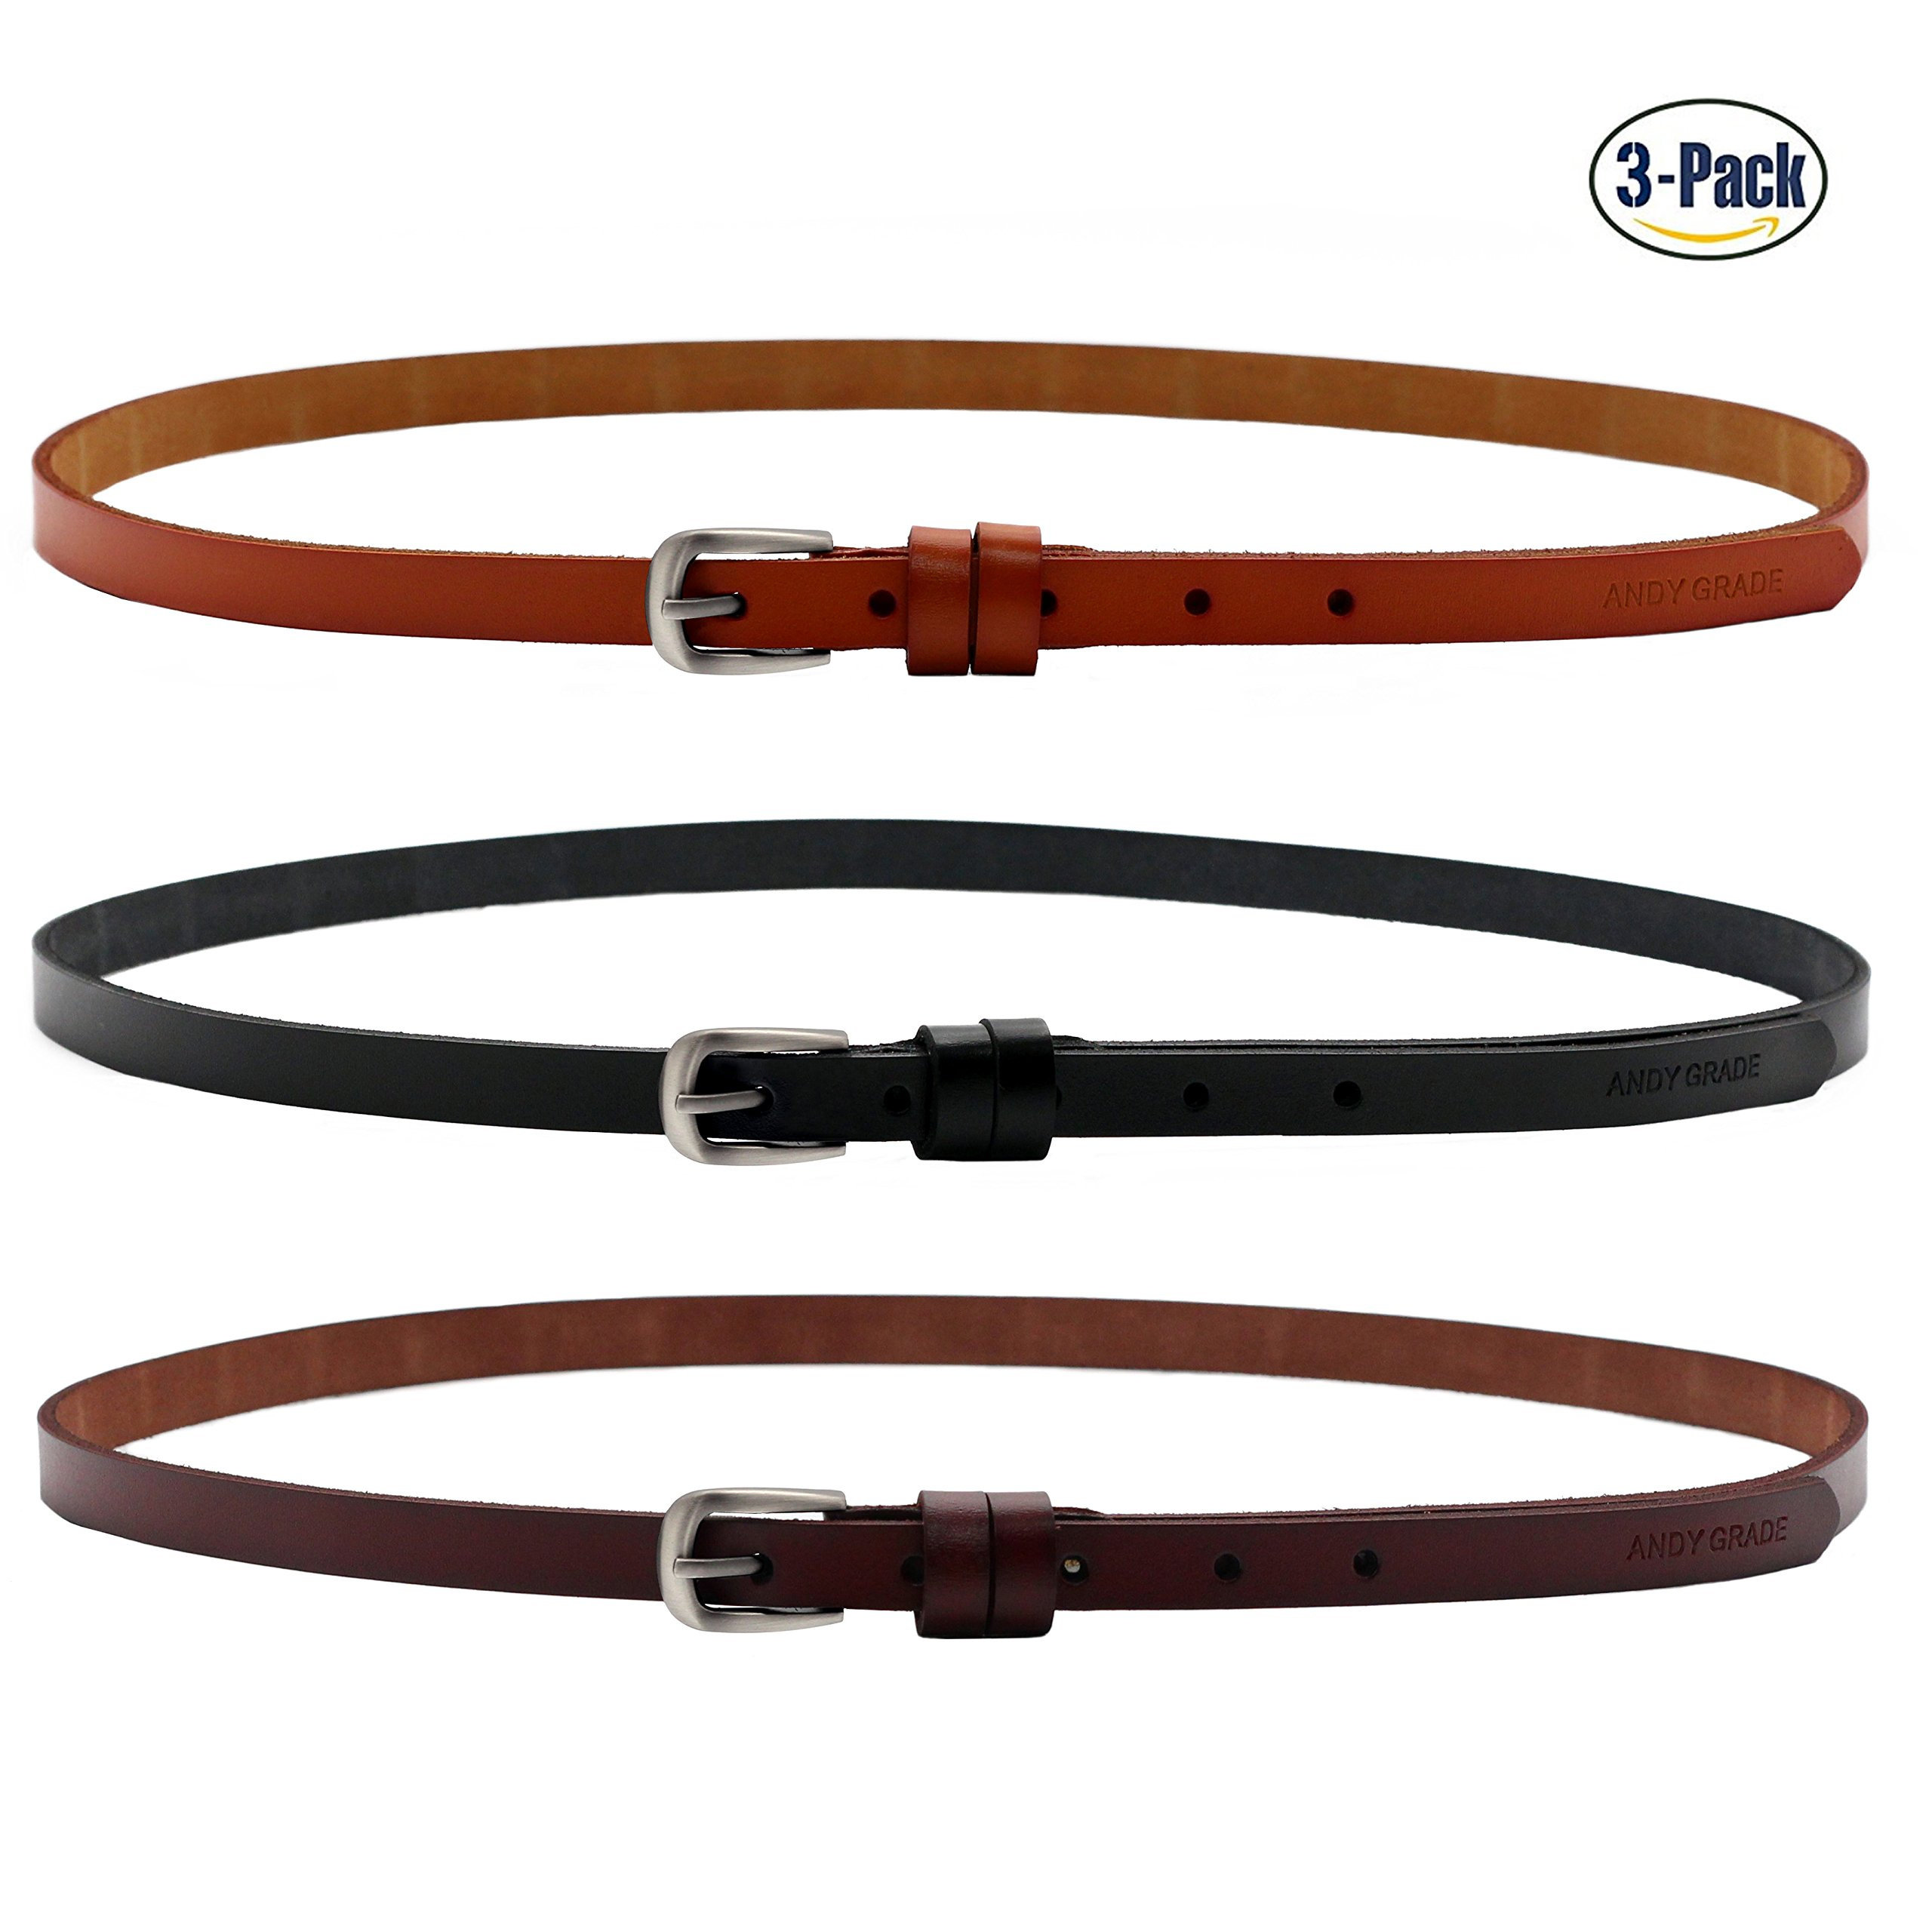 Set of 3 Women's Genuine Cowhide Leather Stylish Thin Dress Belt Fashion Vintage Casual Skinny Belts for Jeans Shorts Pants Summer for Women With Alloy Pin Buckle By ANDY GRADE (Style A)